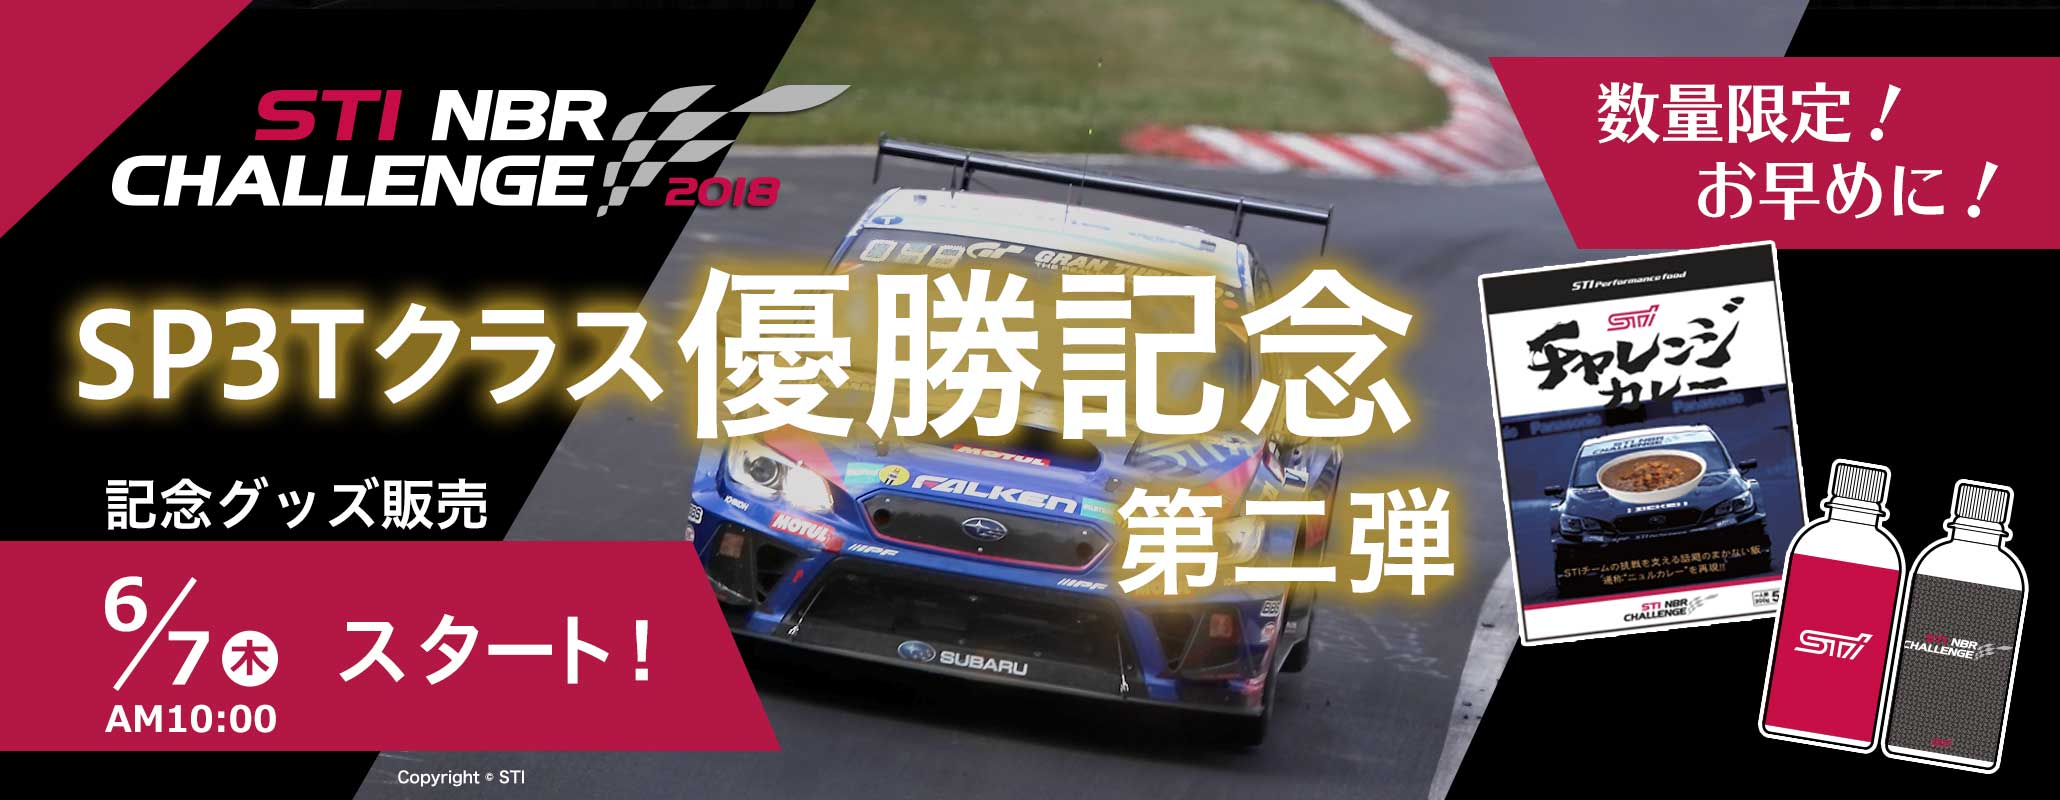 NBR2018 SP3Tクラス 優勝記念グッズ数量限定販売 第二弾